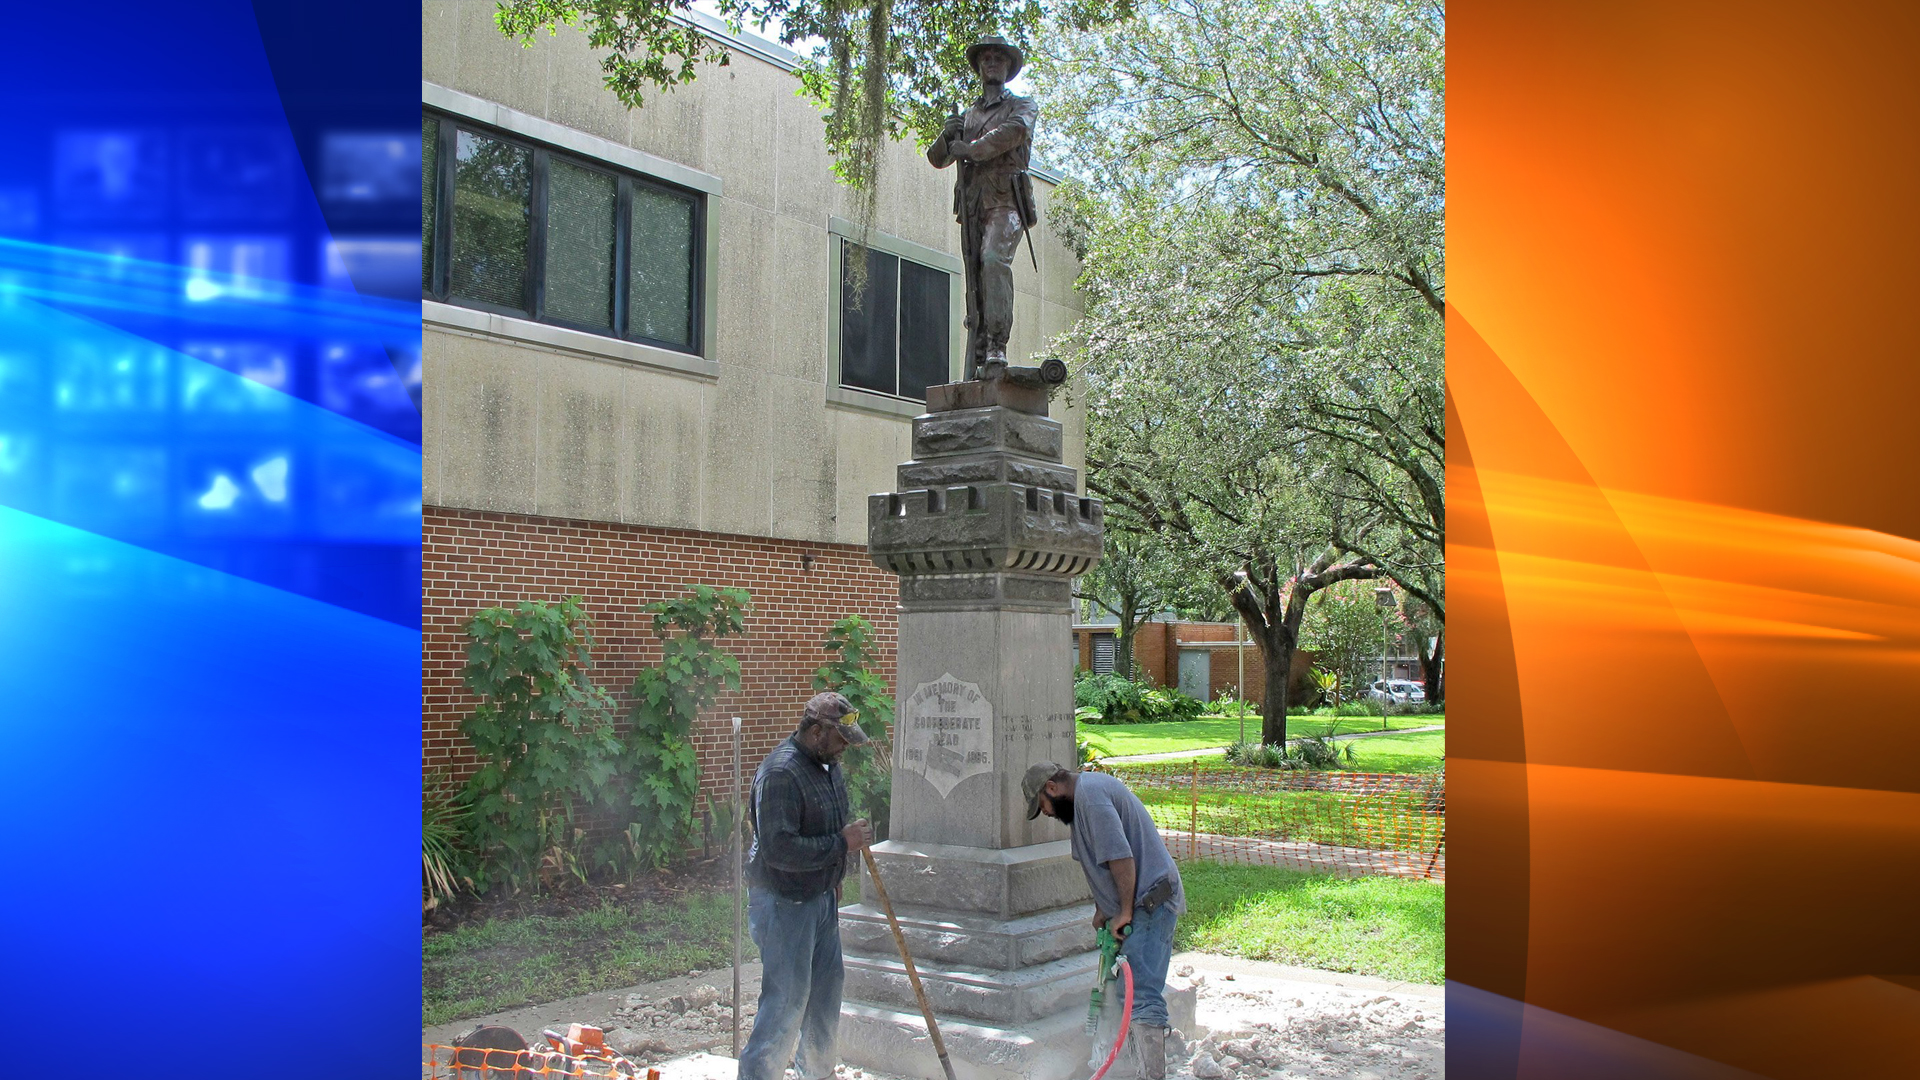 """A Confederate statue called """"Old Joe"""" was removed in Gainesville, Florida, on Monday, August 14, 2017. (John Dearren/AP via CNN Wire)"""